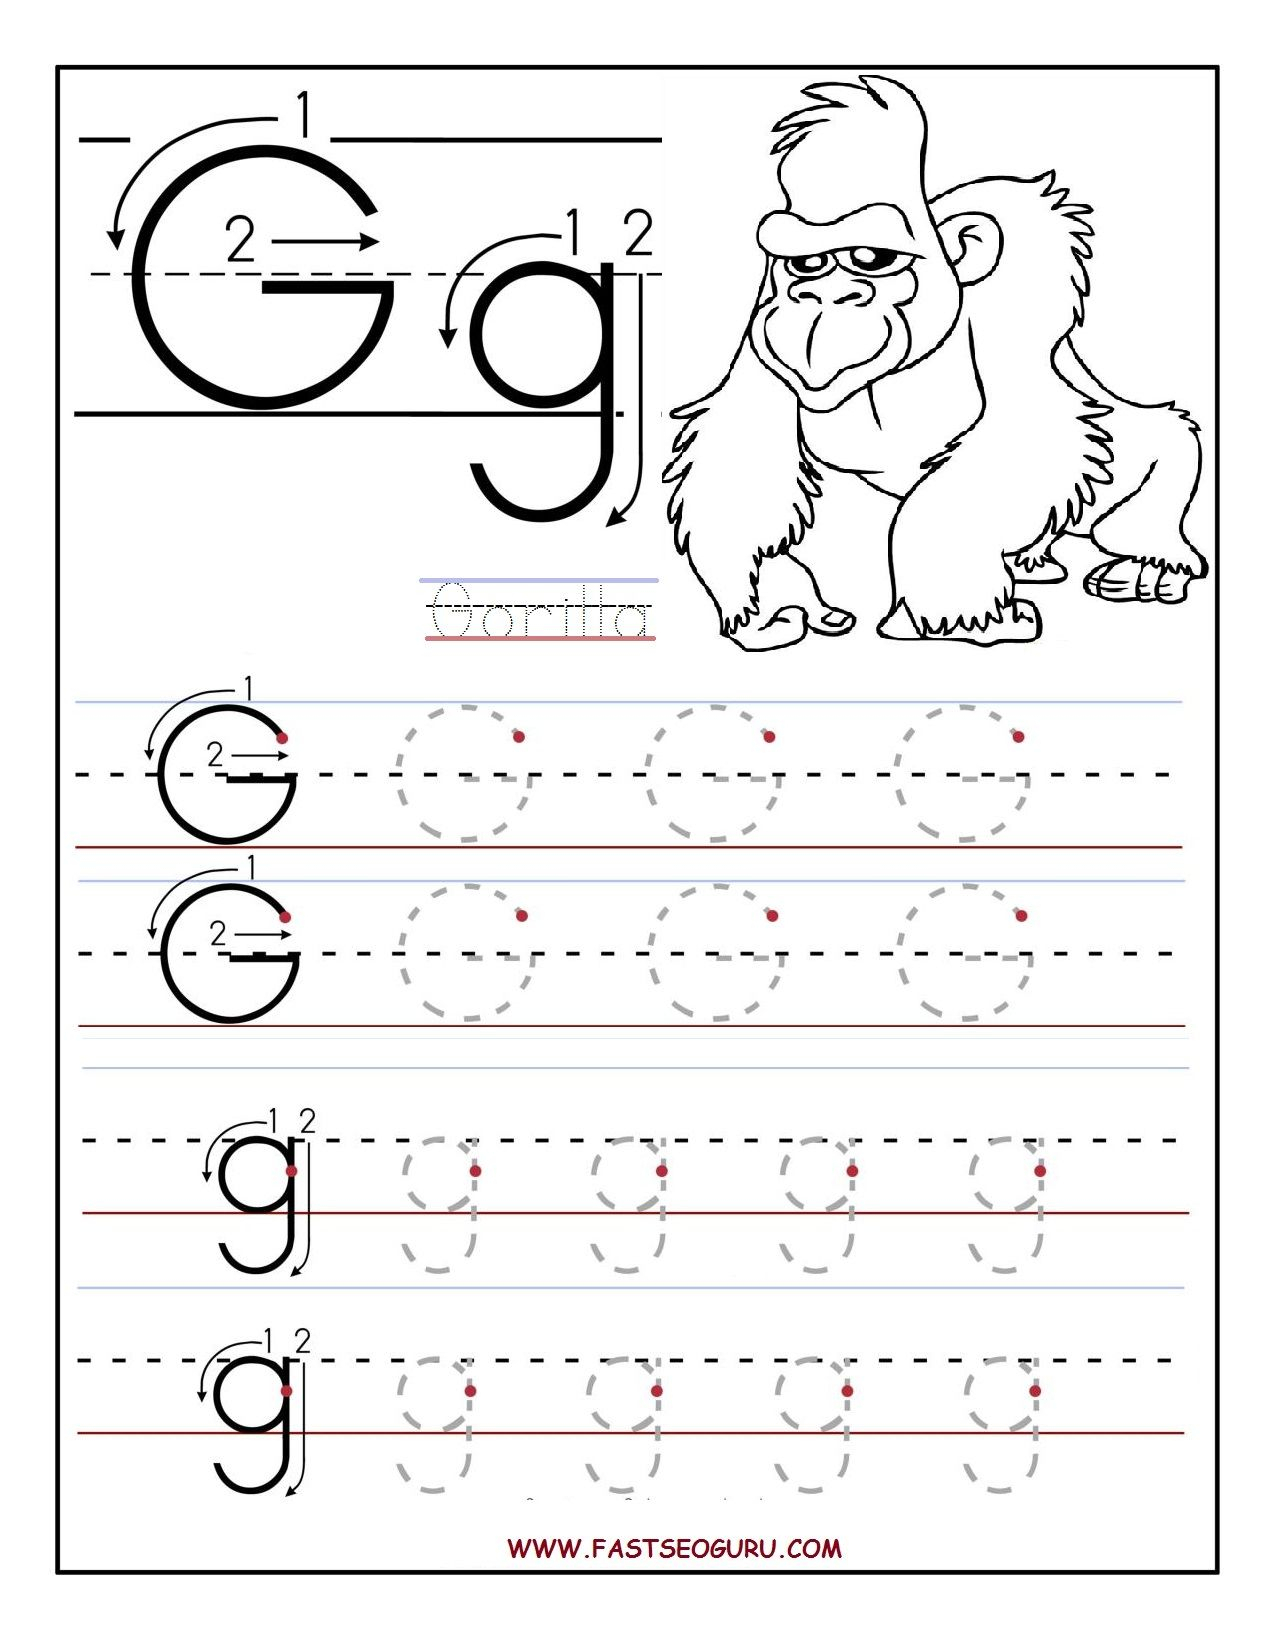 Printable Letter G Tracing Worksheets For Preschool | 파닉스 intended for Letter G Tracing Preschool